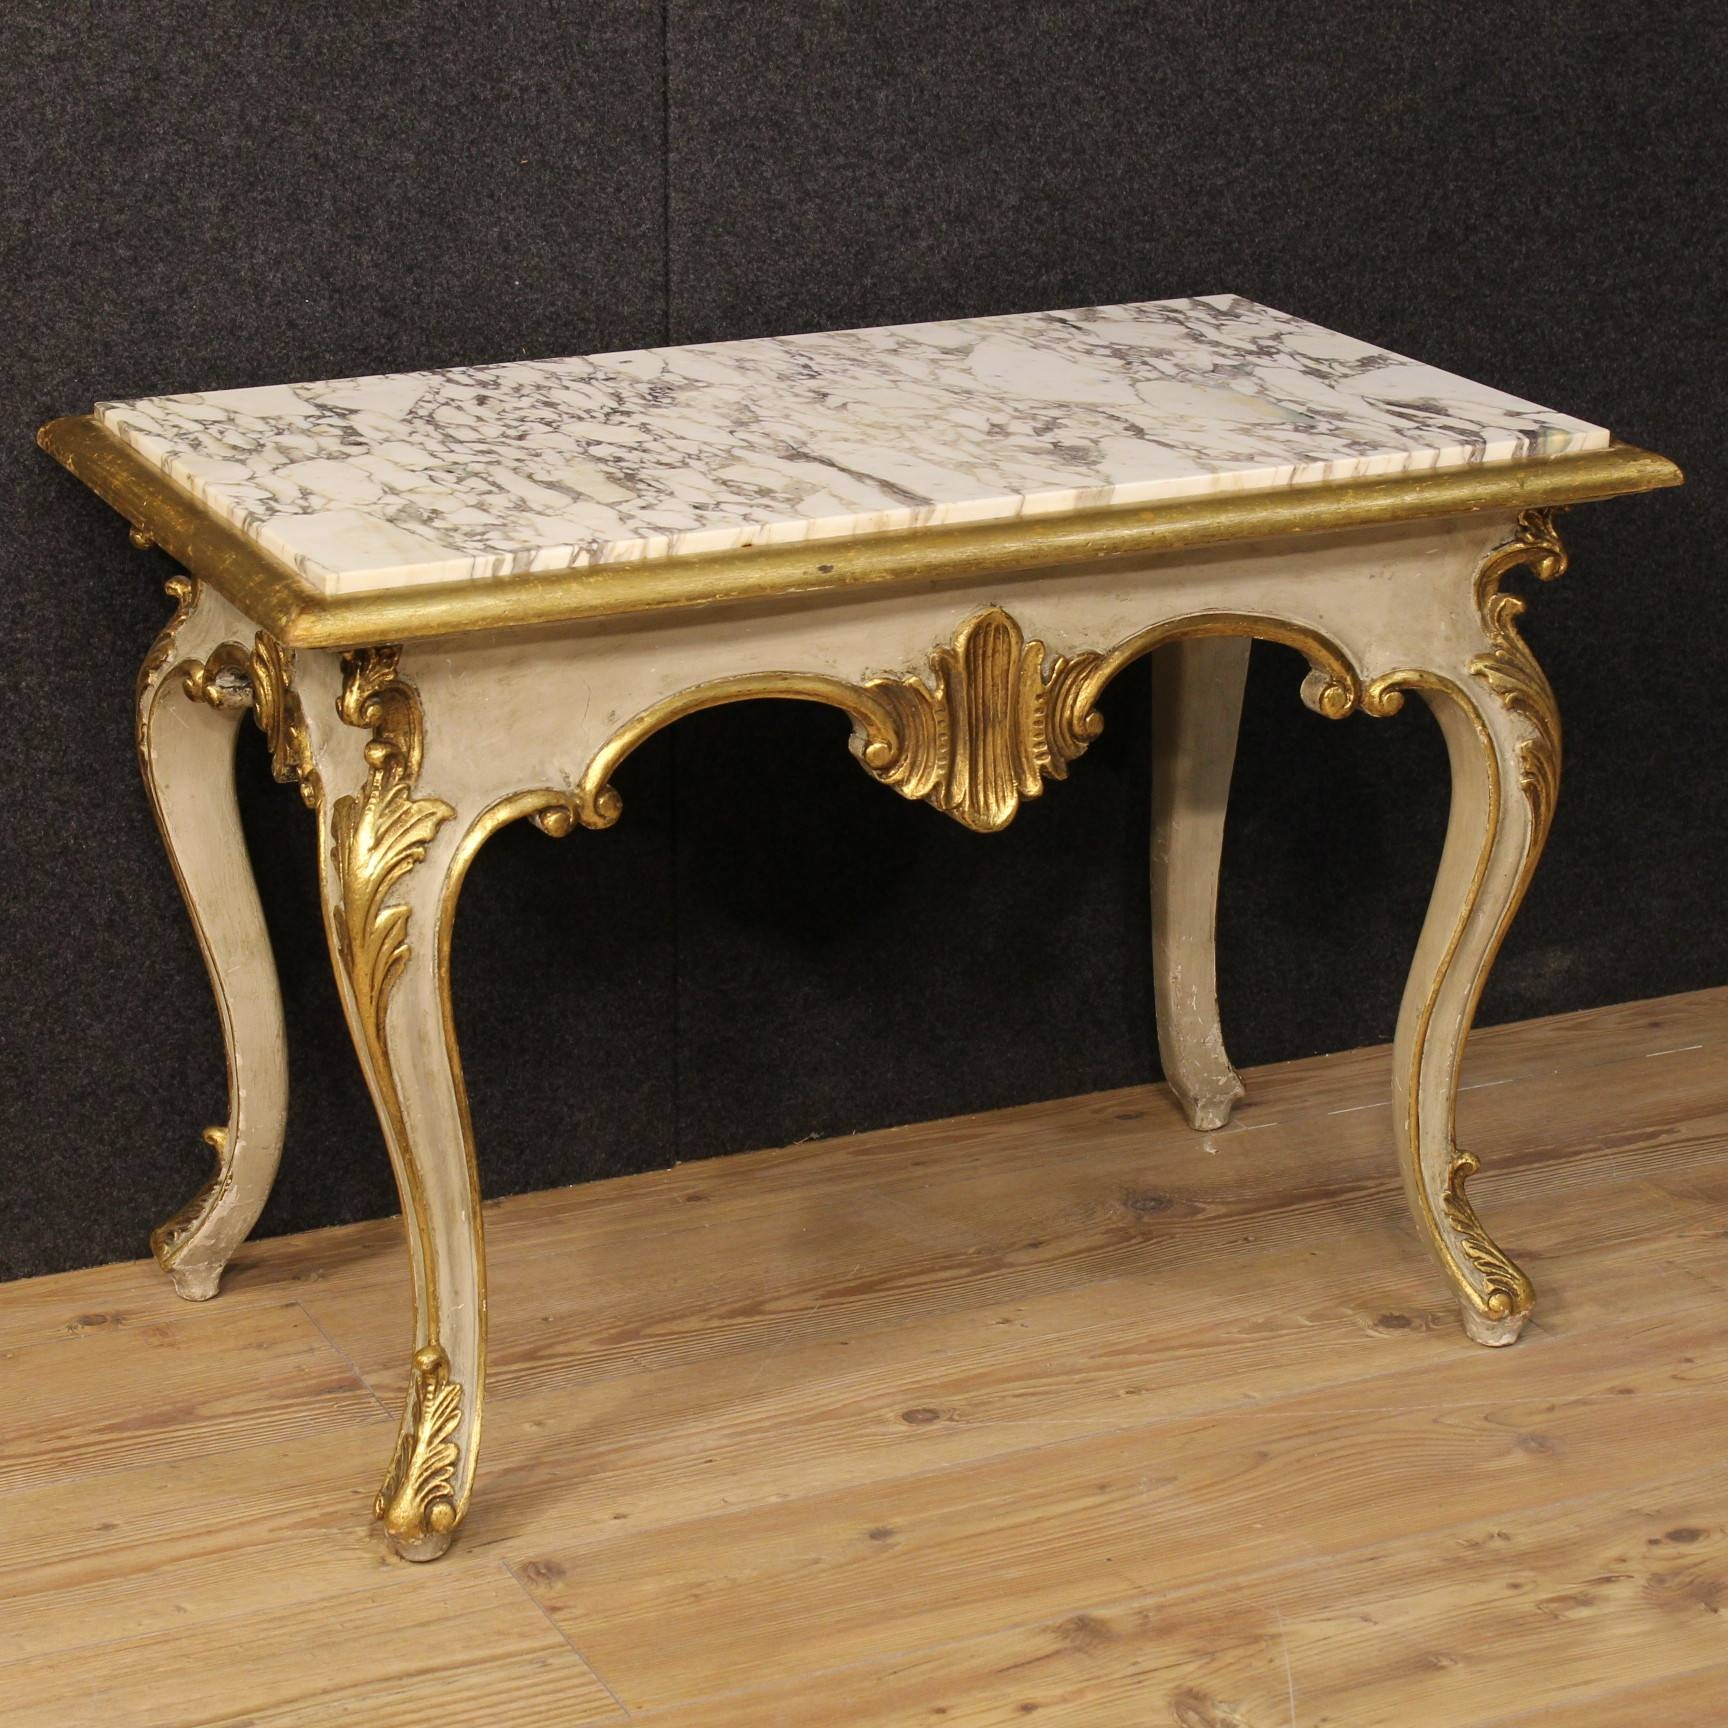 20Th Century Italian Coffee Table In Lacquered And Gilded Wood (C throughout Italian Coffee Tables (Image 1 of 15)